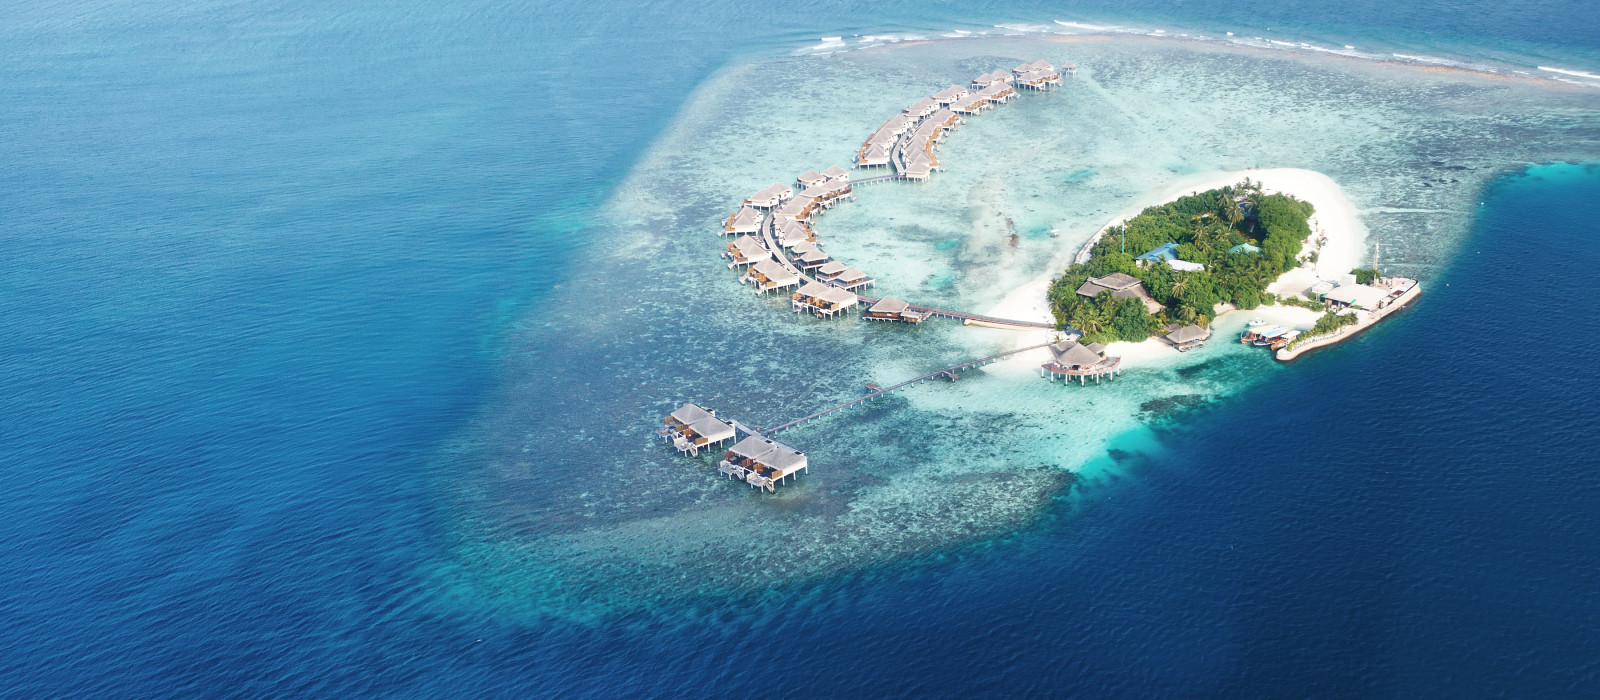 Group of atolls and islands in Maldives from aerial view, Asia